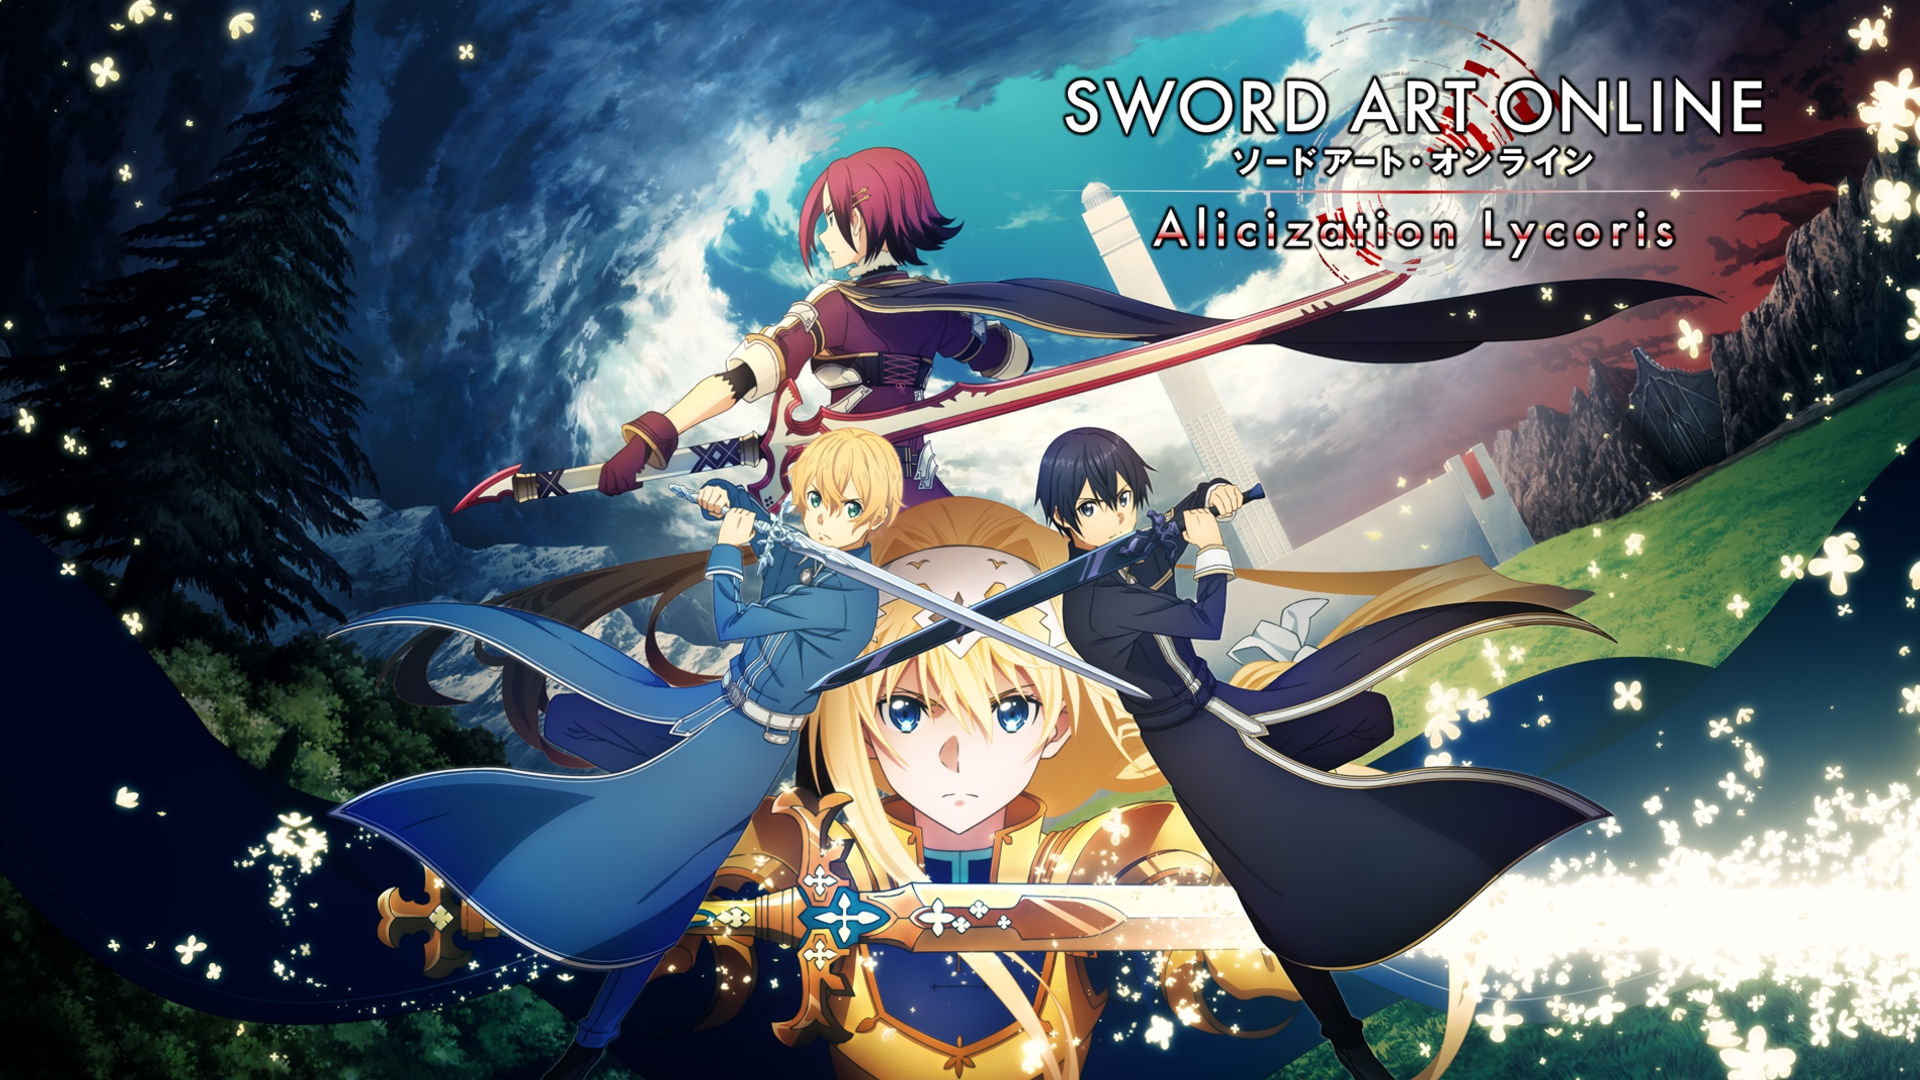 Eugeo stars in the new Sword Art Online game: Alicization Lycoris 1